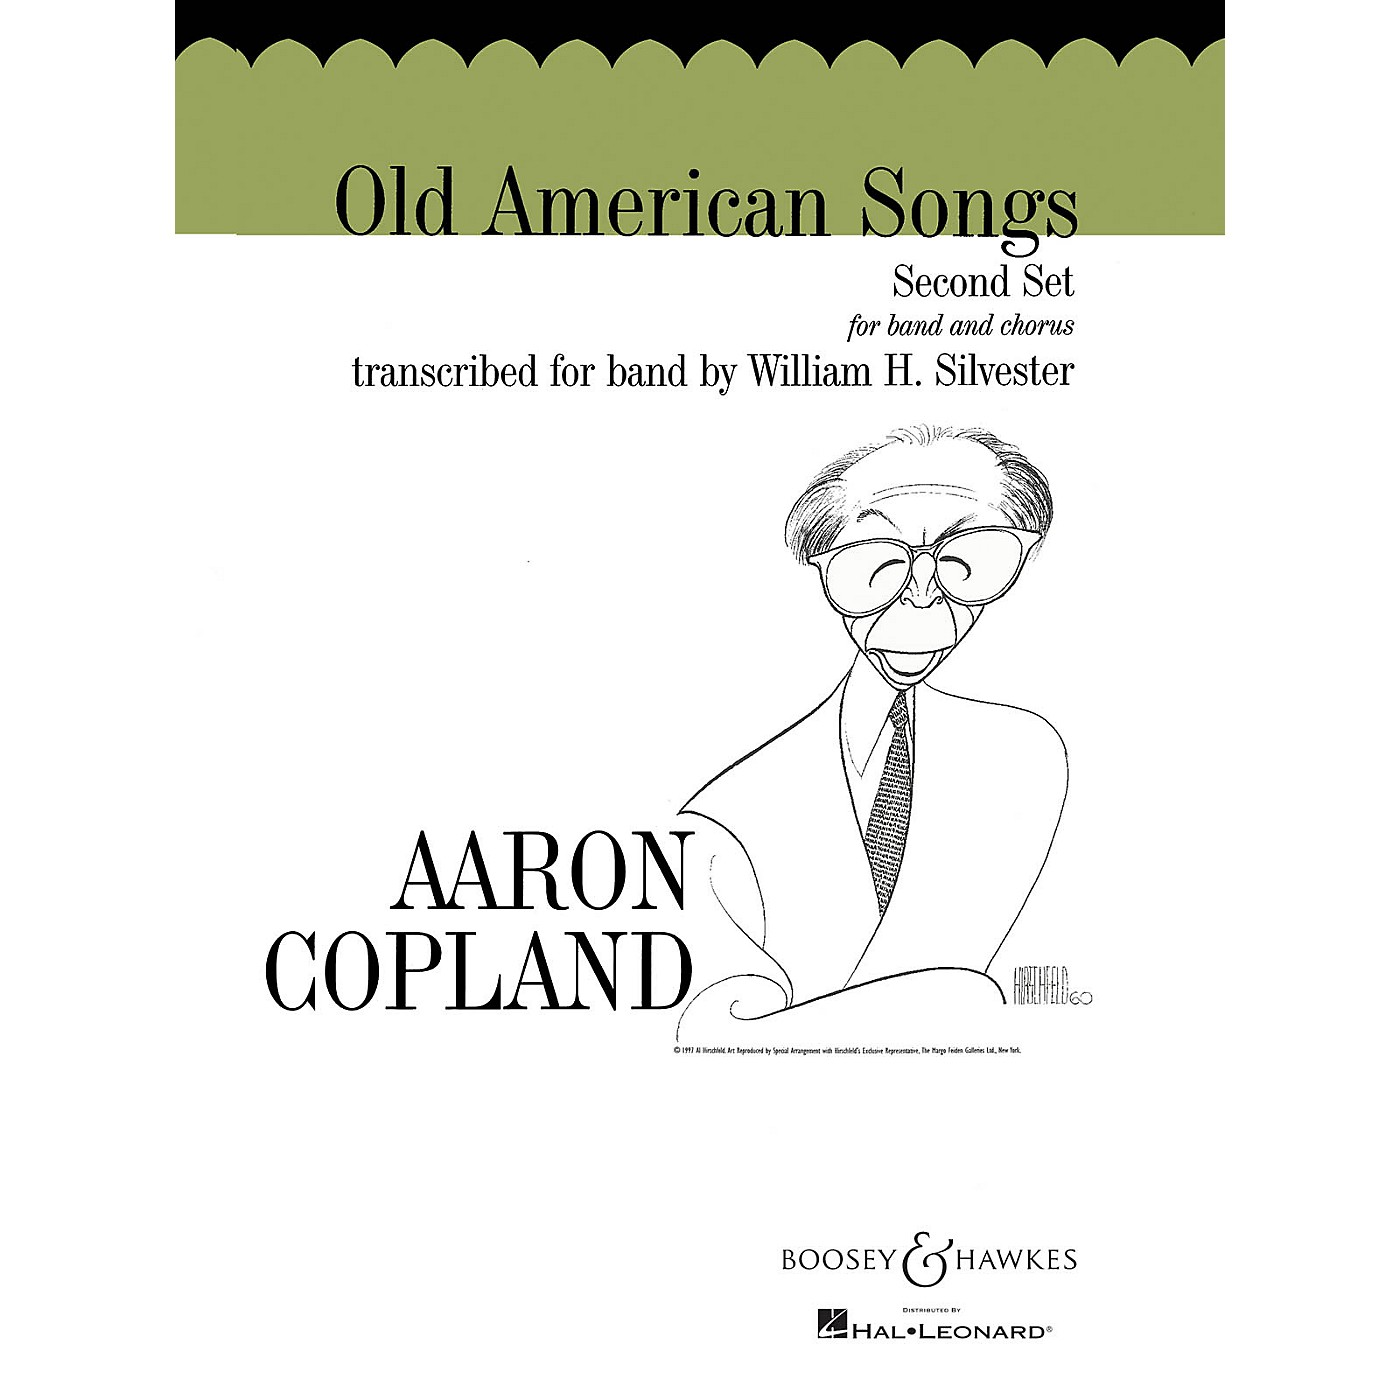 Boosey and Hawkes Old American Songs - Second Set Concert Band Composed by Aaron Copland Arranged by William H. Silvester thumbnail